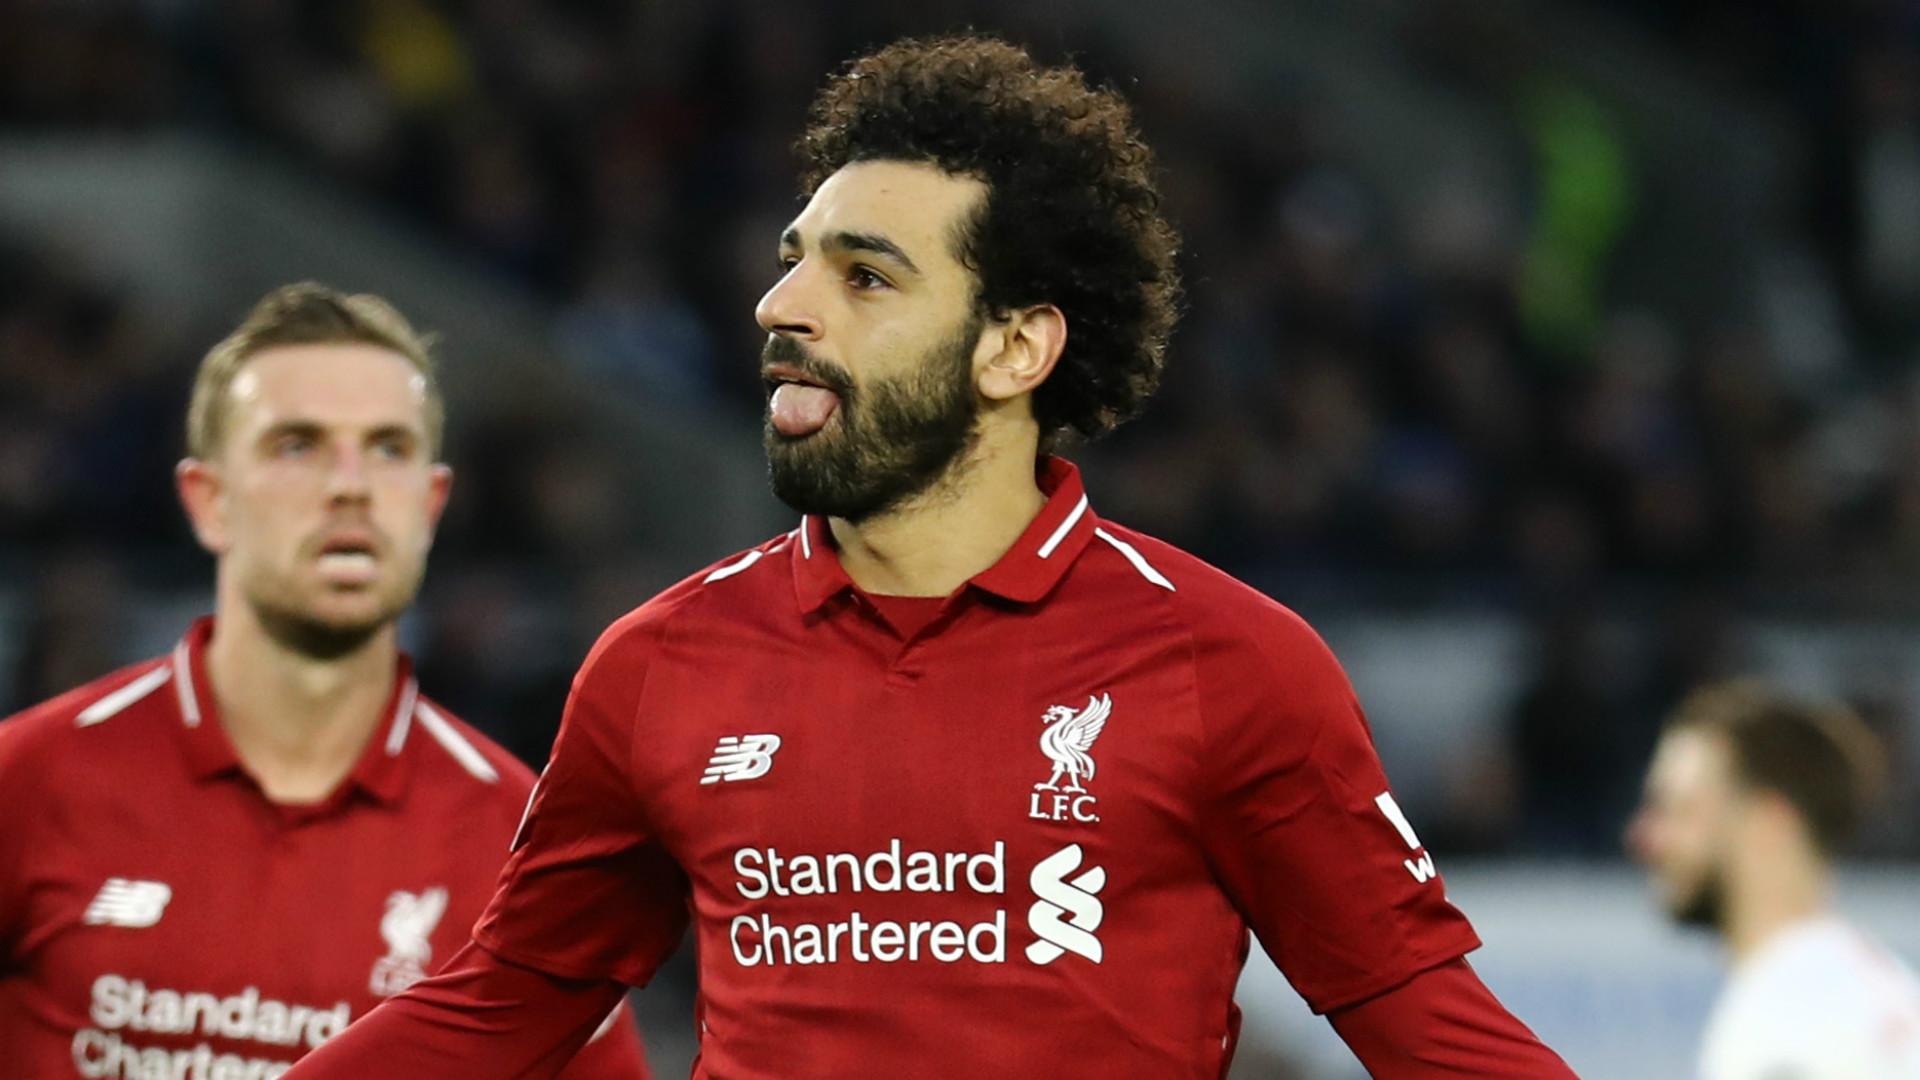 Mohamed Salah Liverpool 2018 19 Getty Images Betting  C2 B7 Liverpool V Crystal Palace